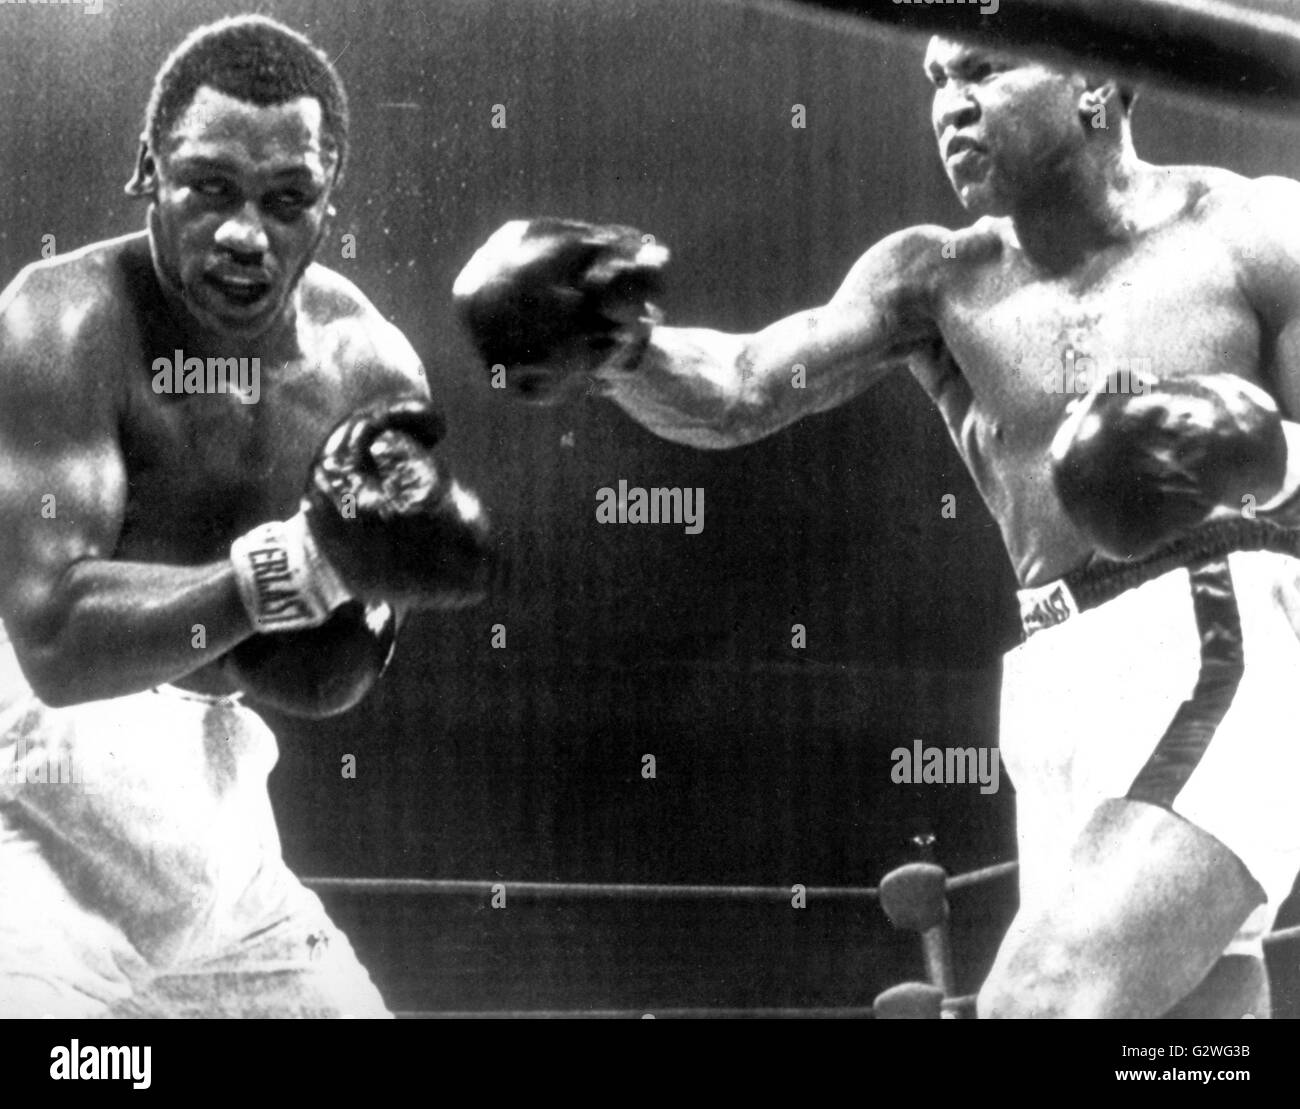 FILE - A file picture dated 29 January 1974 shows US heavyweight boxer Muhammad Ali (R) and his opponent Joe Frazier - Stock Image